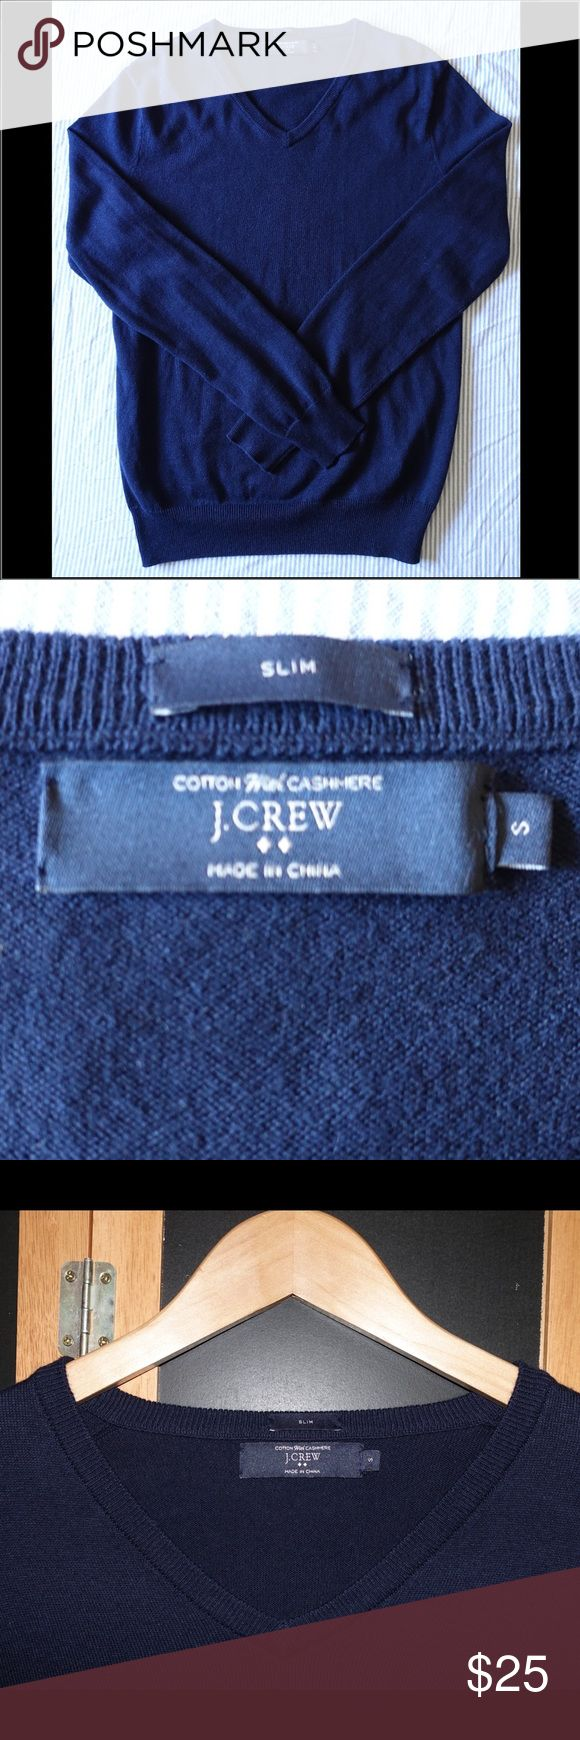 NWOT J. Crew Men's V Neck Pullover Sweater - Small For sale is a new without tag J. Crew Men's V Neck Cotton/Cashmere Sweater in Navy Blue Color and sized Small. J. Crew Sweaters V-Neck